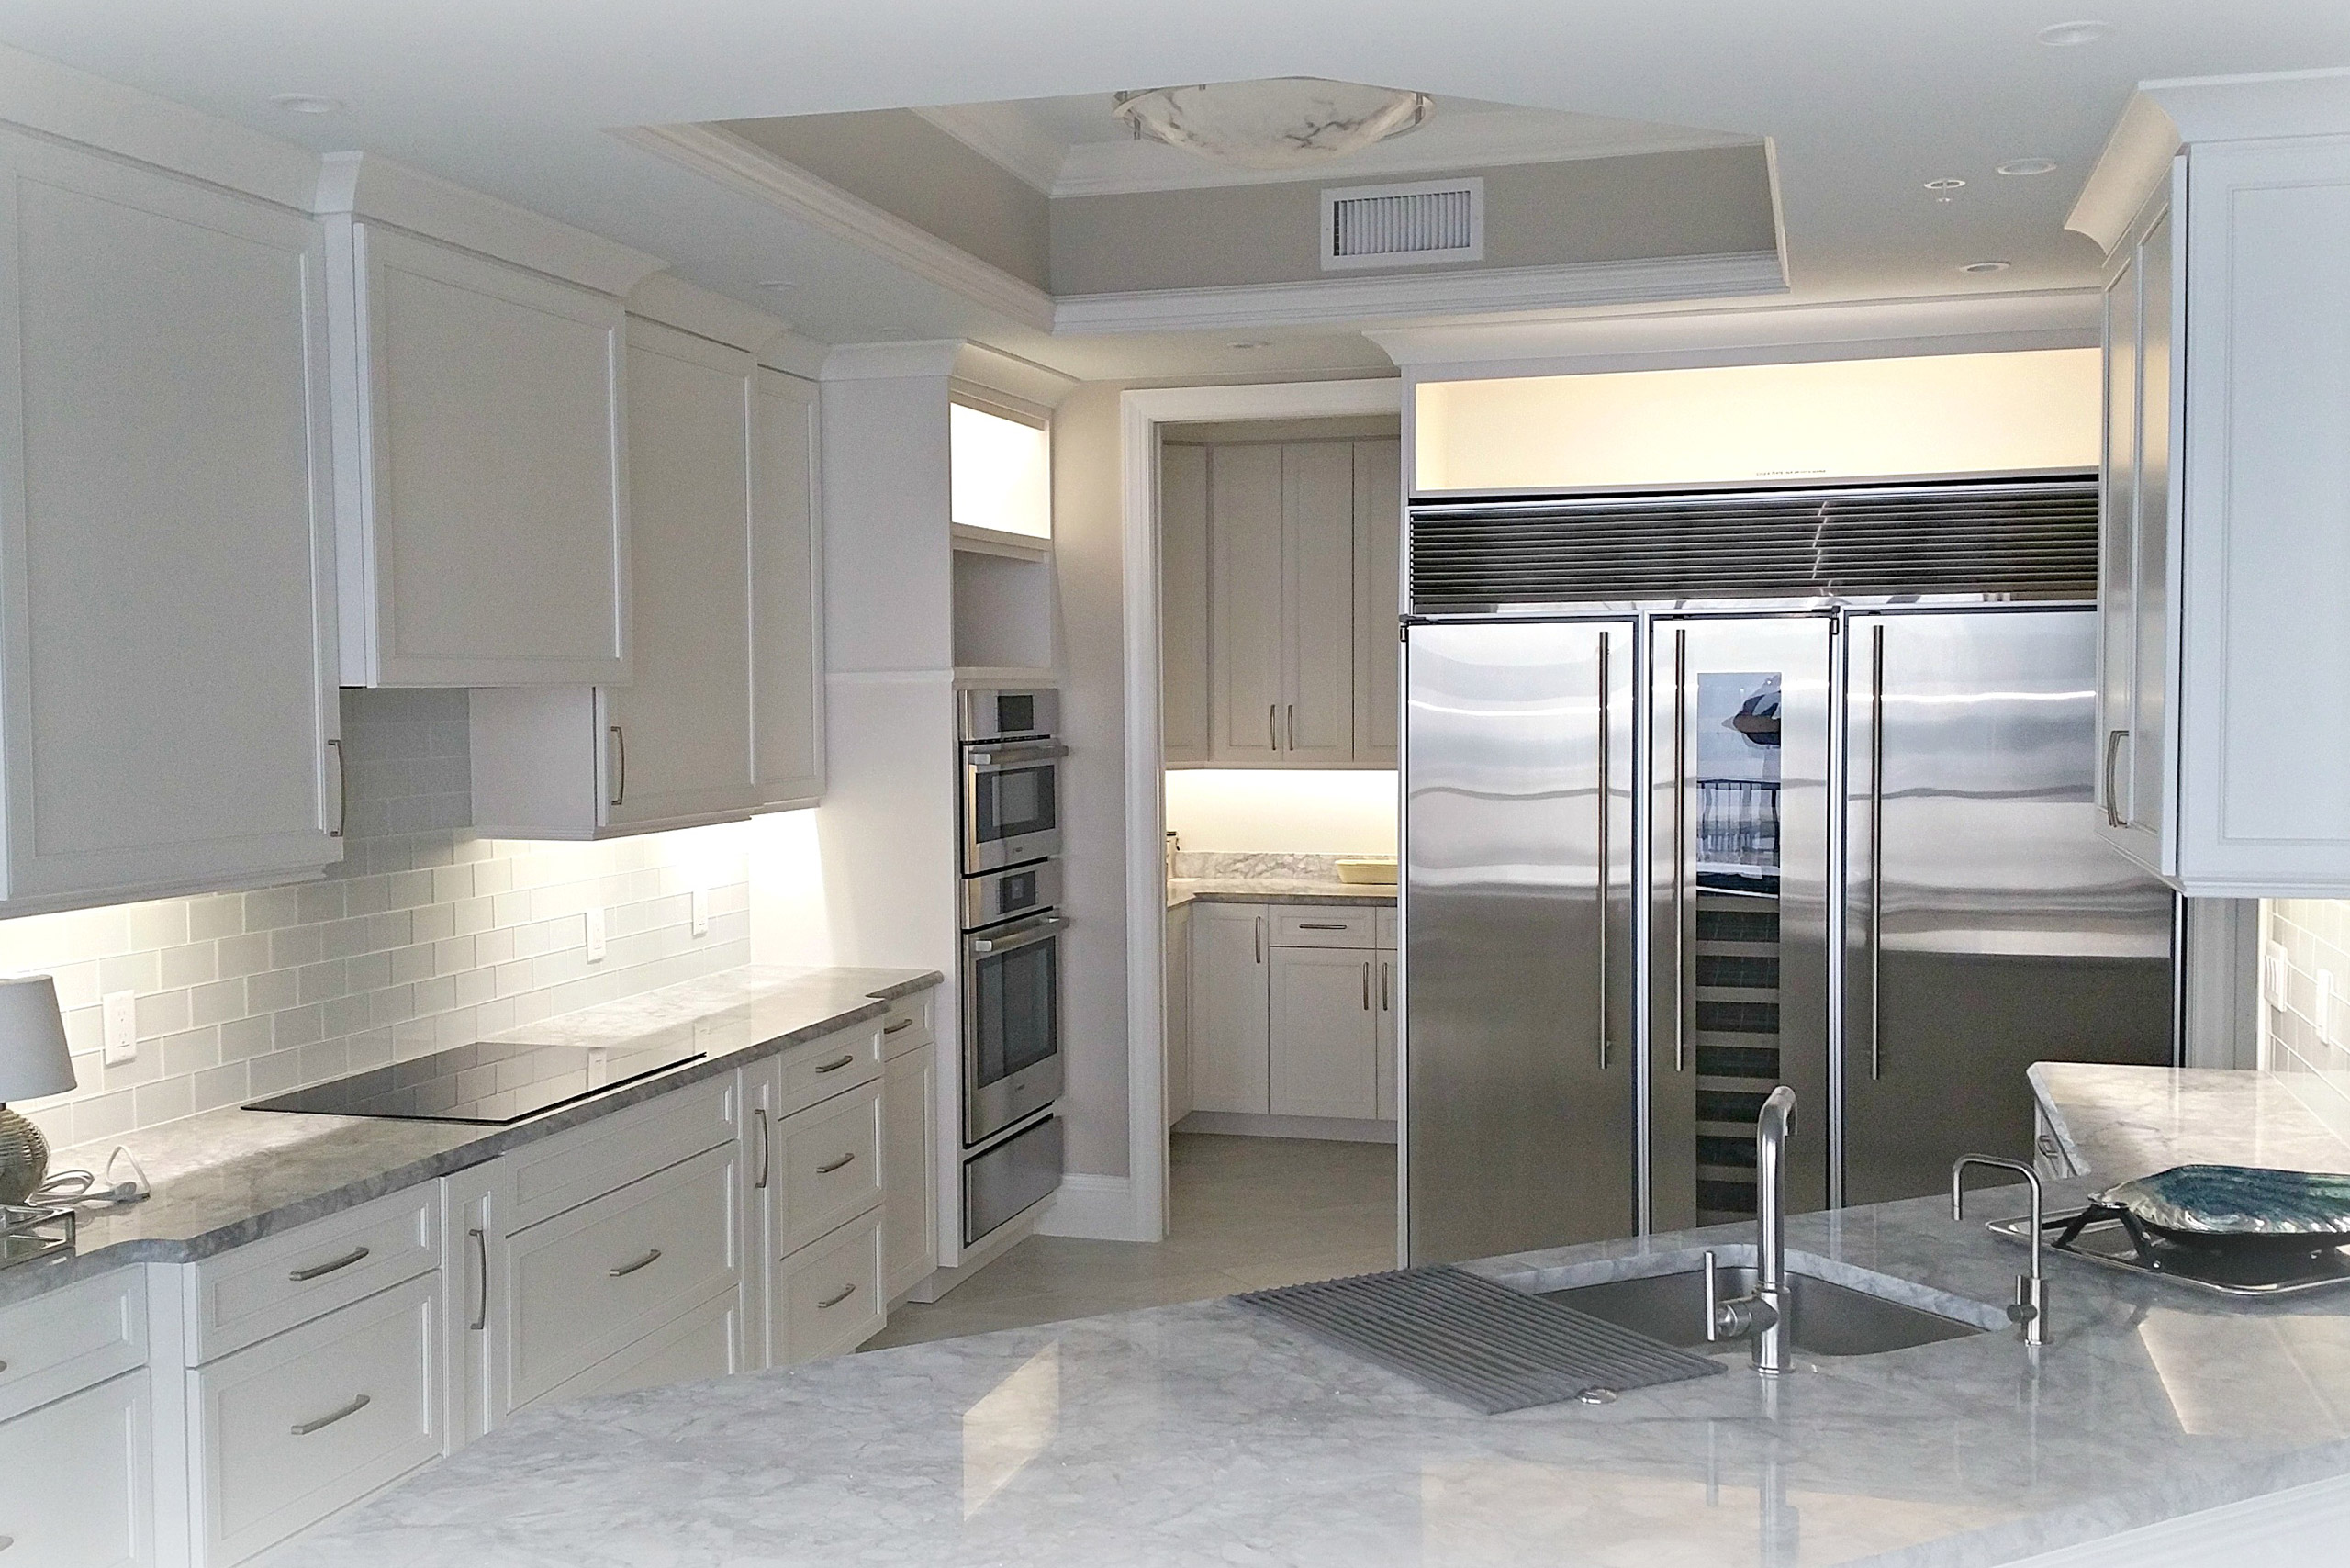 Florida Coastline Construction | FLCCINC | Construction Company | Home Remodeling | Kitchen Remodeling Pictures